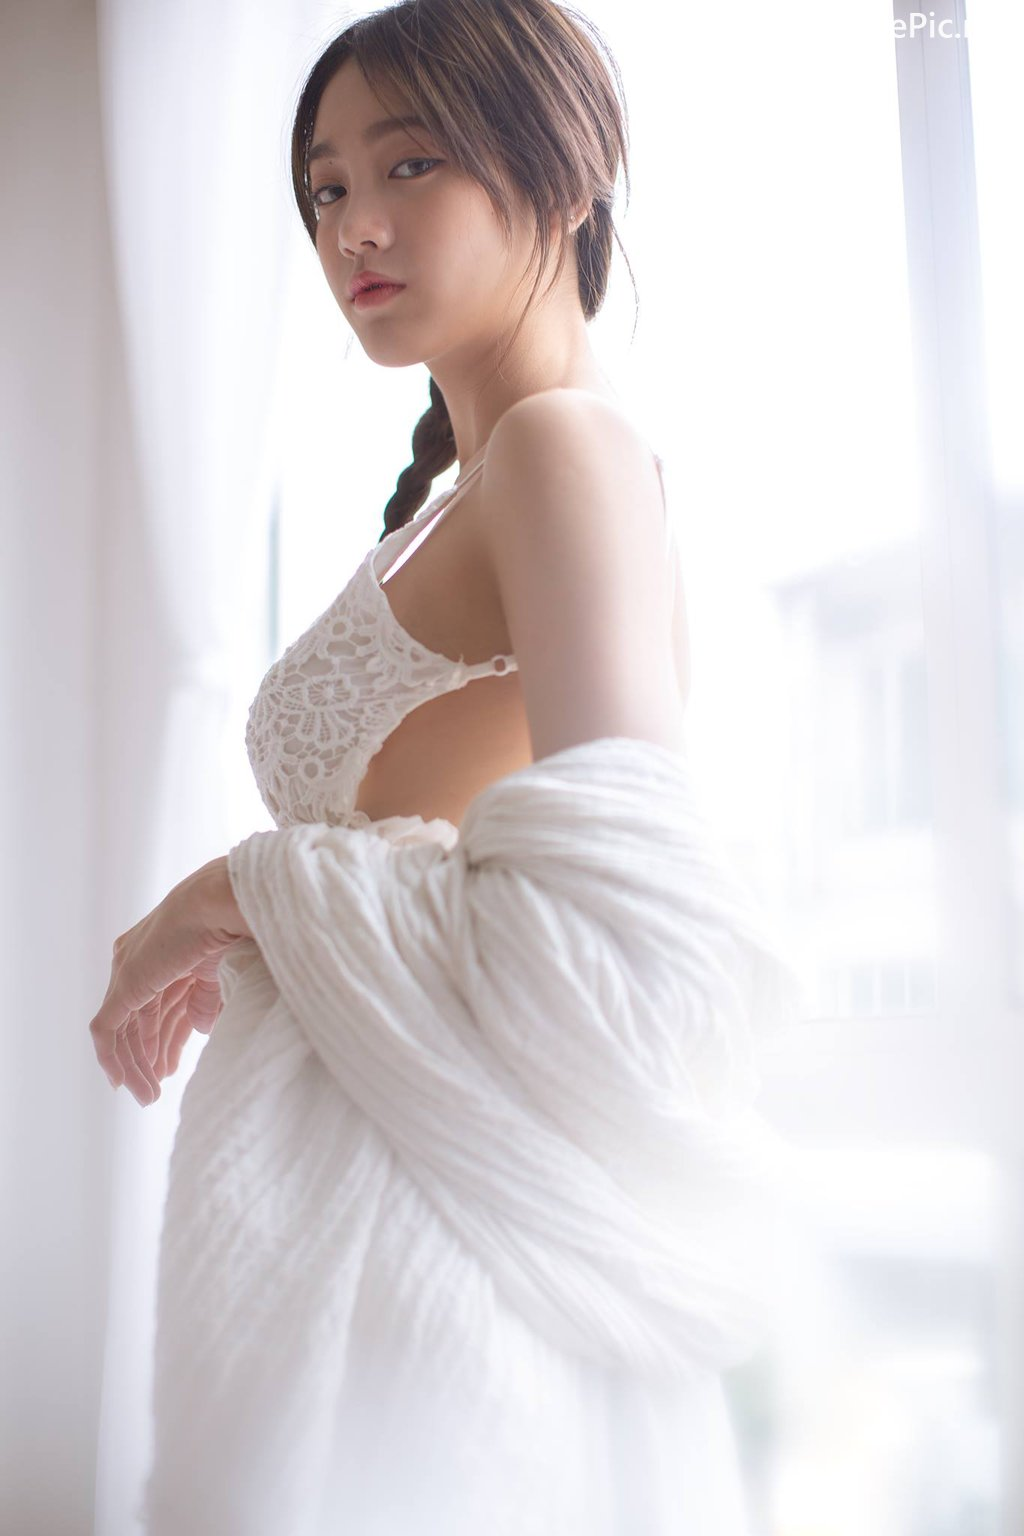 Image Thailand Model - Pimploy Chitranapawong - Beautiful In White - TruePic.net - Picture-6